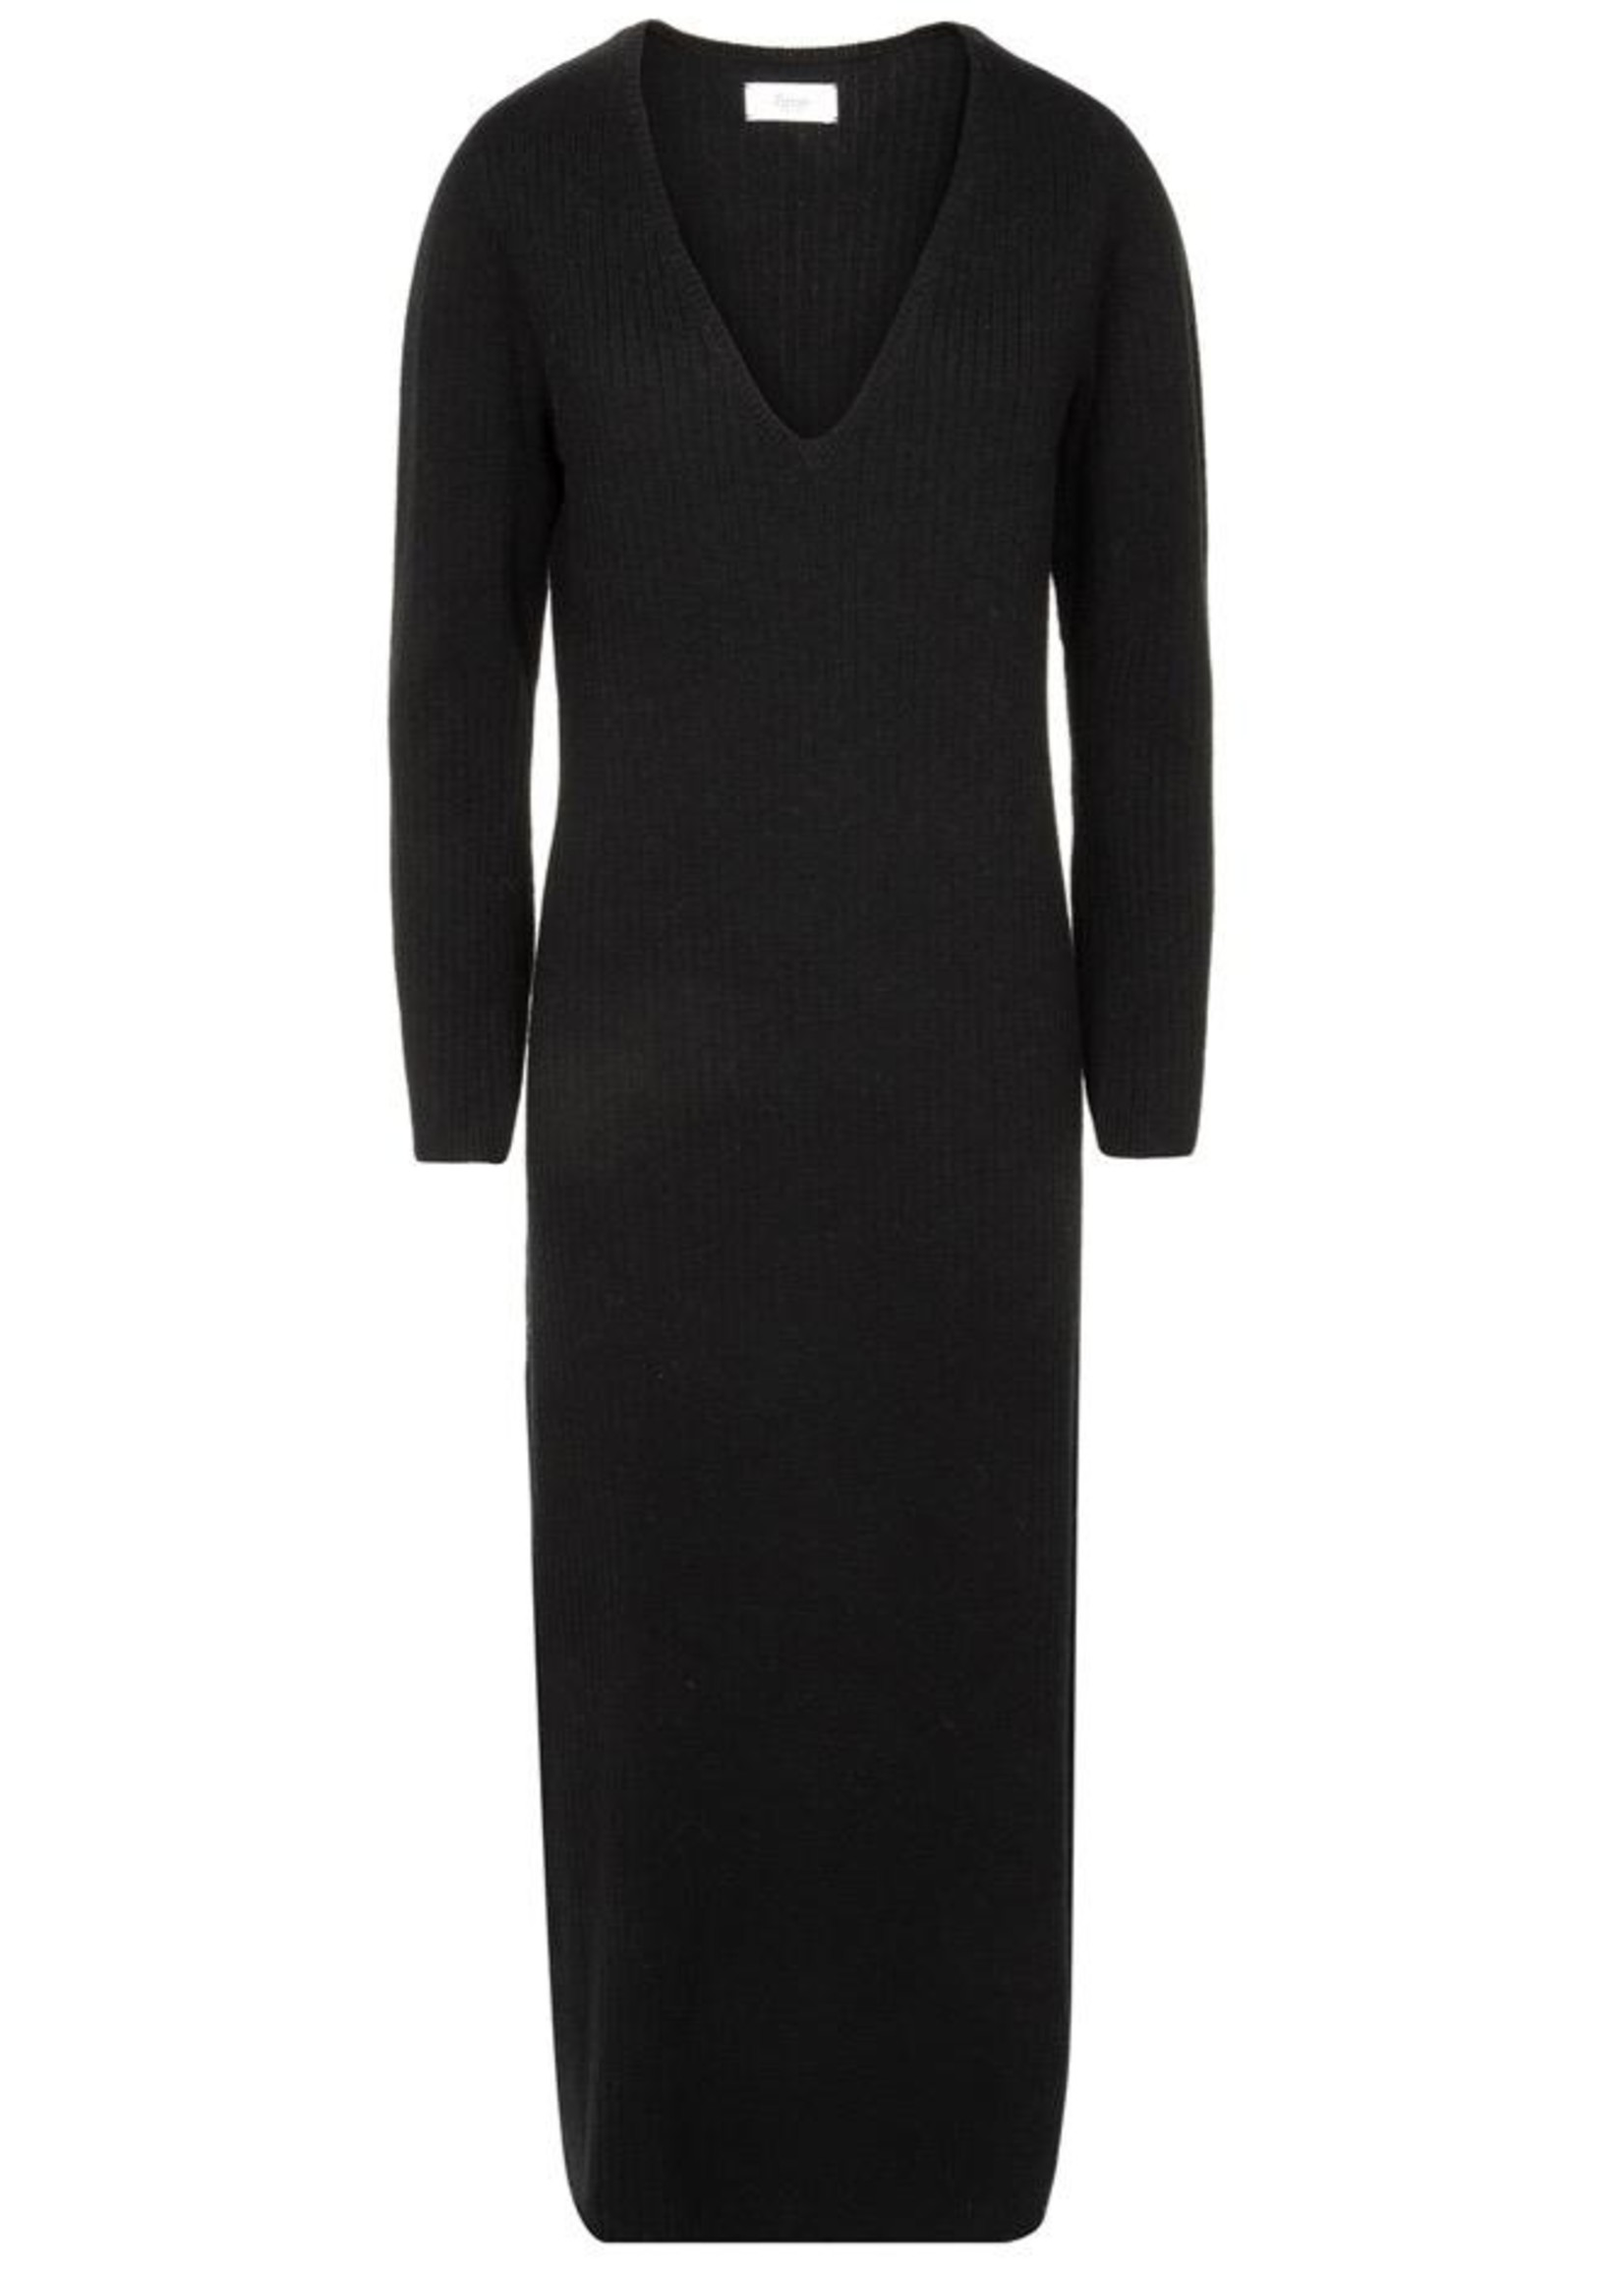 Ame ame antwerp knitted v neck dress black